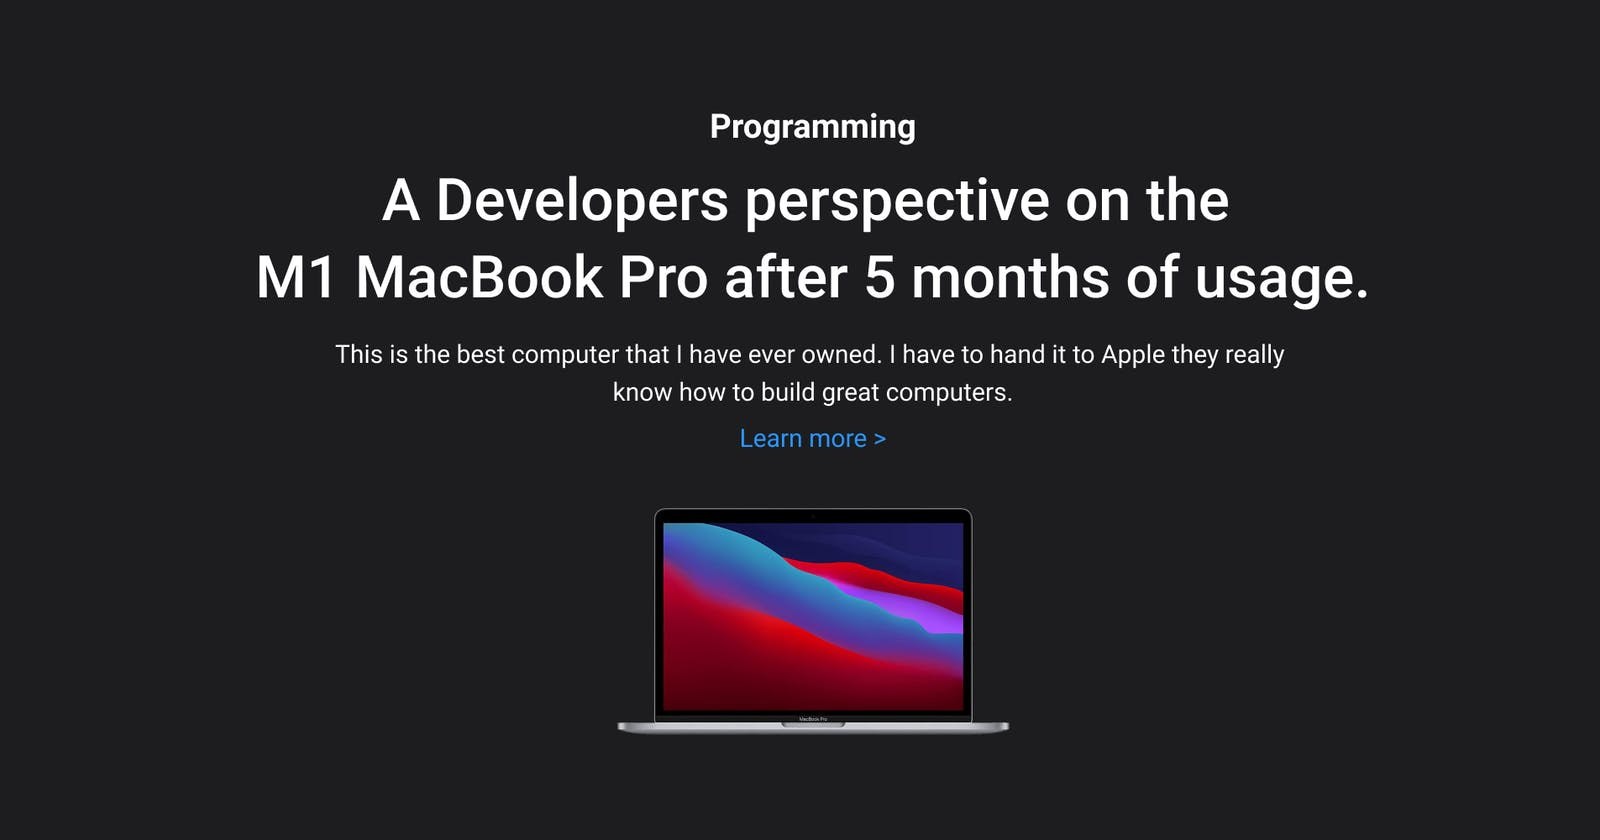 A Developers perspective on the M1 MacBook Pro after 5 months of usage